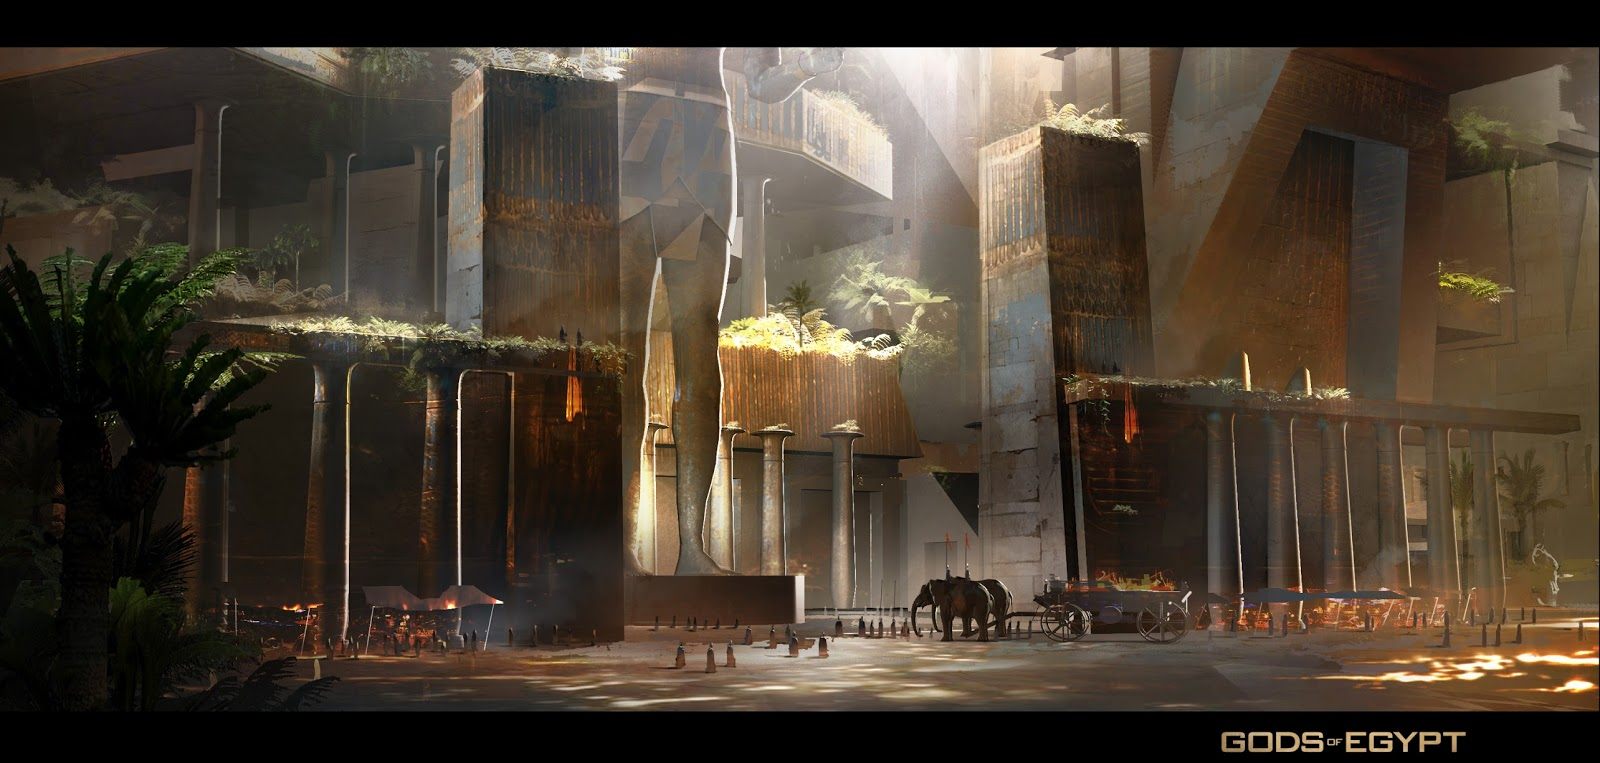 Gods_of_Egypt_Concept_Art_GM_vault_entry.jpg